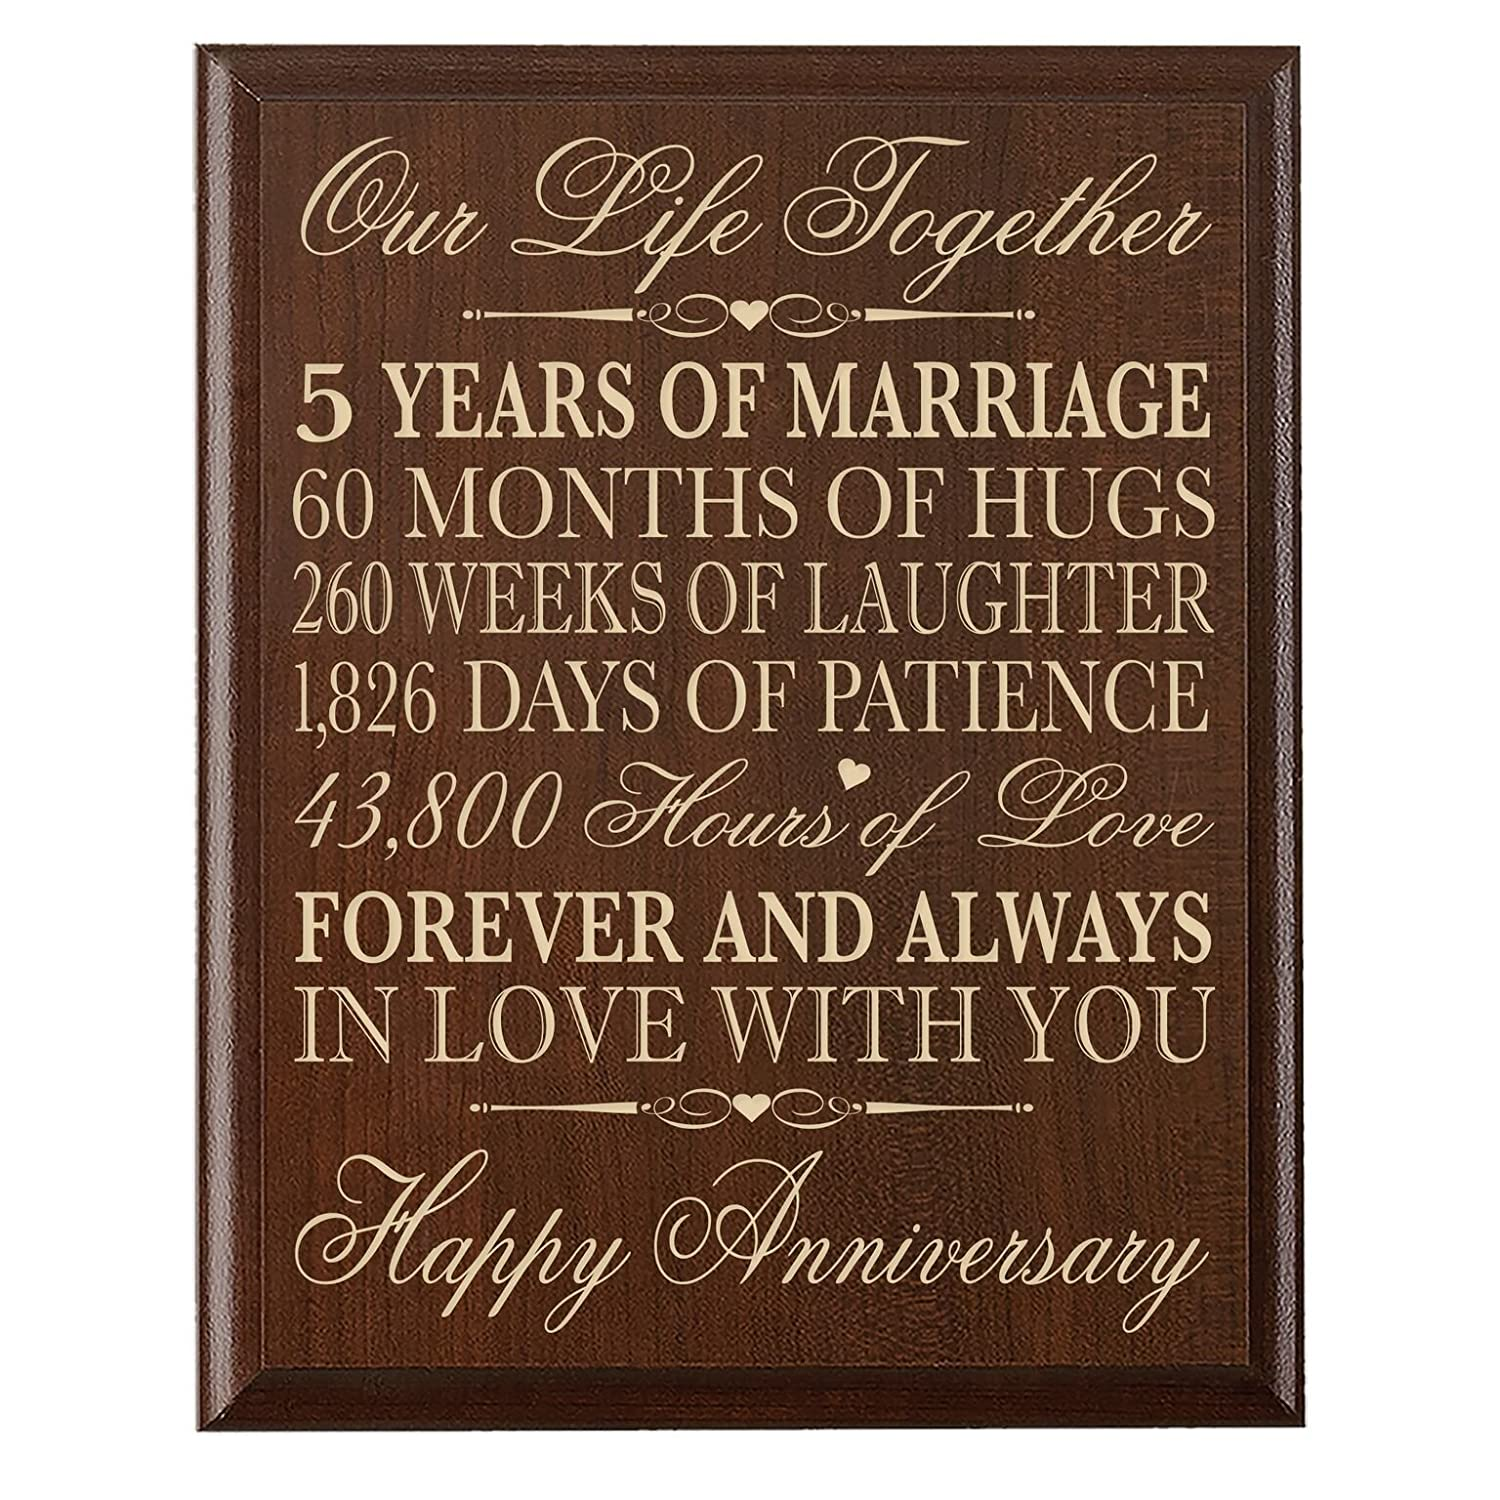 LifeSong Milestones 5th Wedding Anniversary Cherry Wall Plaque Gifts for Couple 5th Anniversary Gifts for Her,5th Wedding Anniversary Gifts for Him 12 inches wide X 15 inches high Wall Plaque By